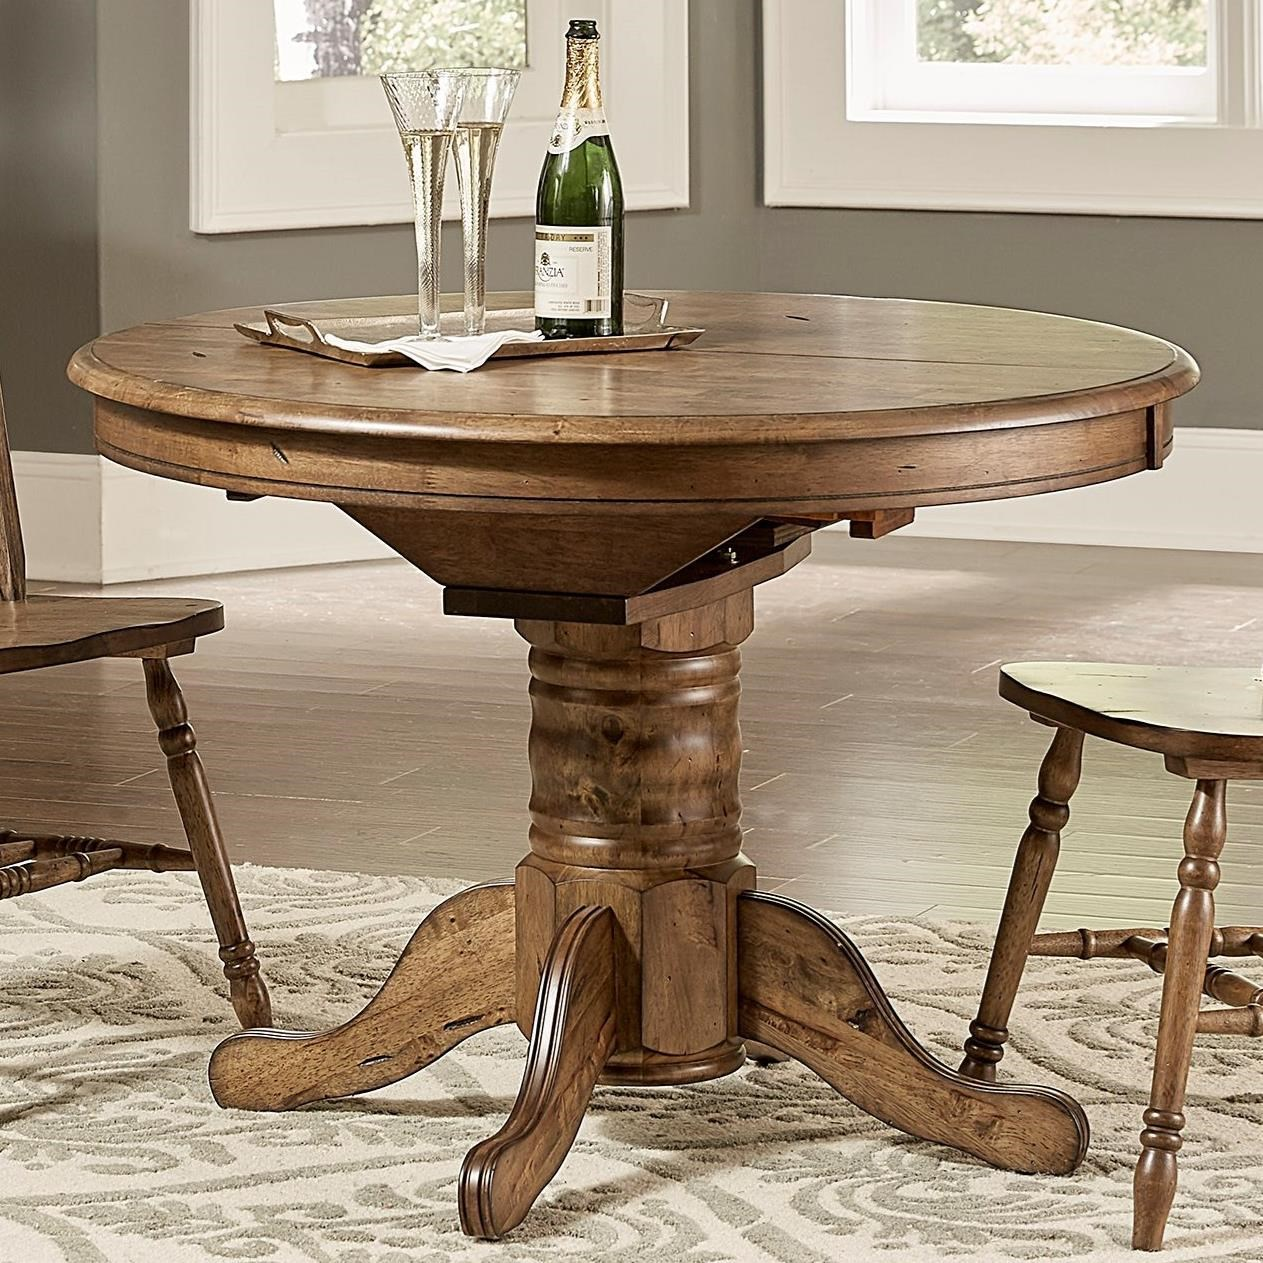 Winchenton Transitional Oval Pedestal Dining Table With